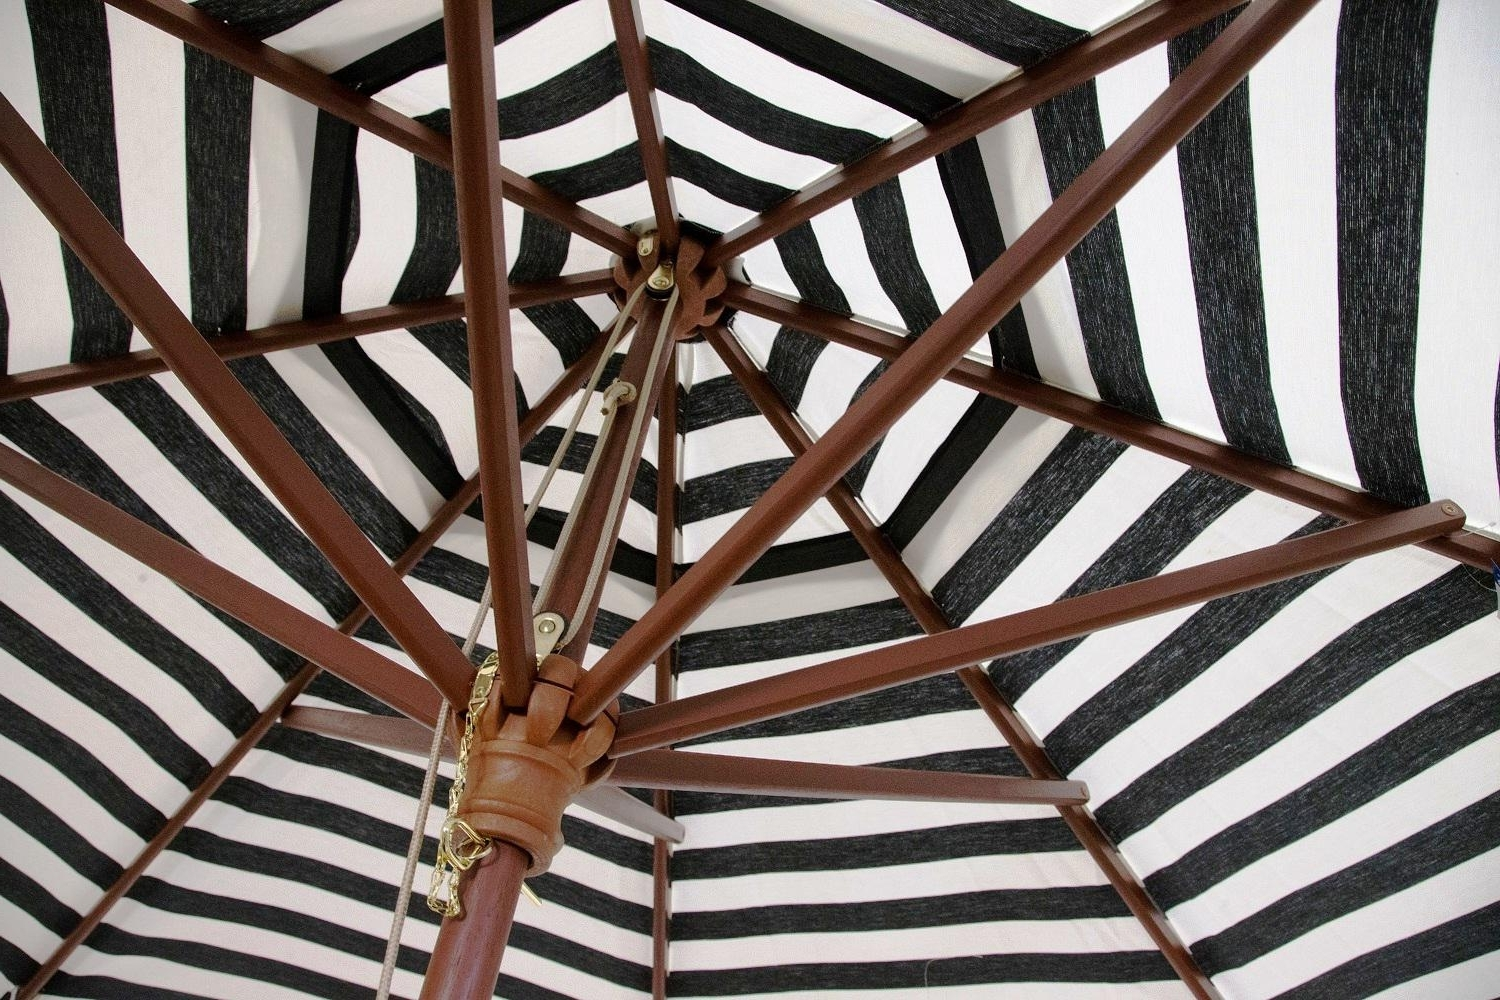 Most Current Black And White Striped Patio Umbrellas Inside Black And White Striped Outdoor Patio Umbrella — The Mebrureoral (View 10 of 20)